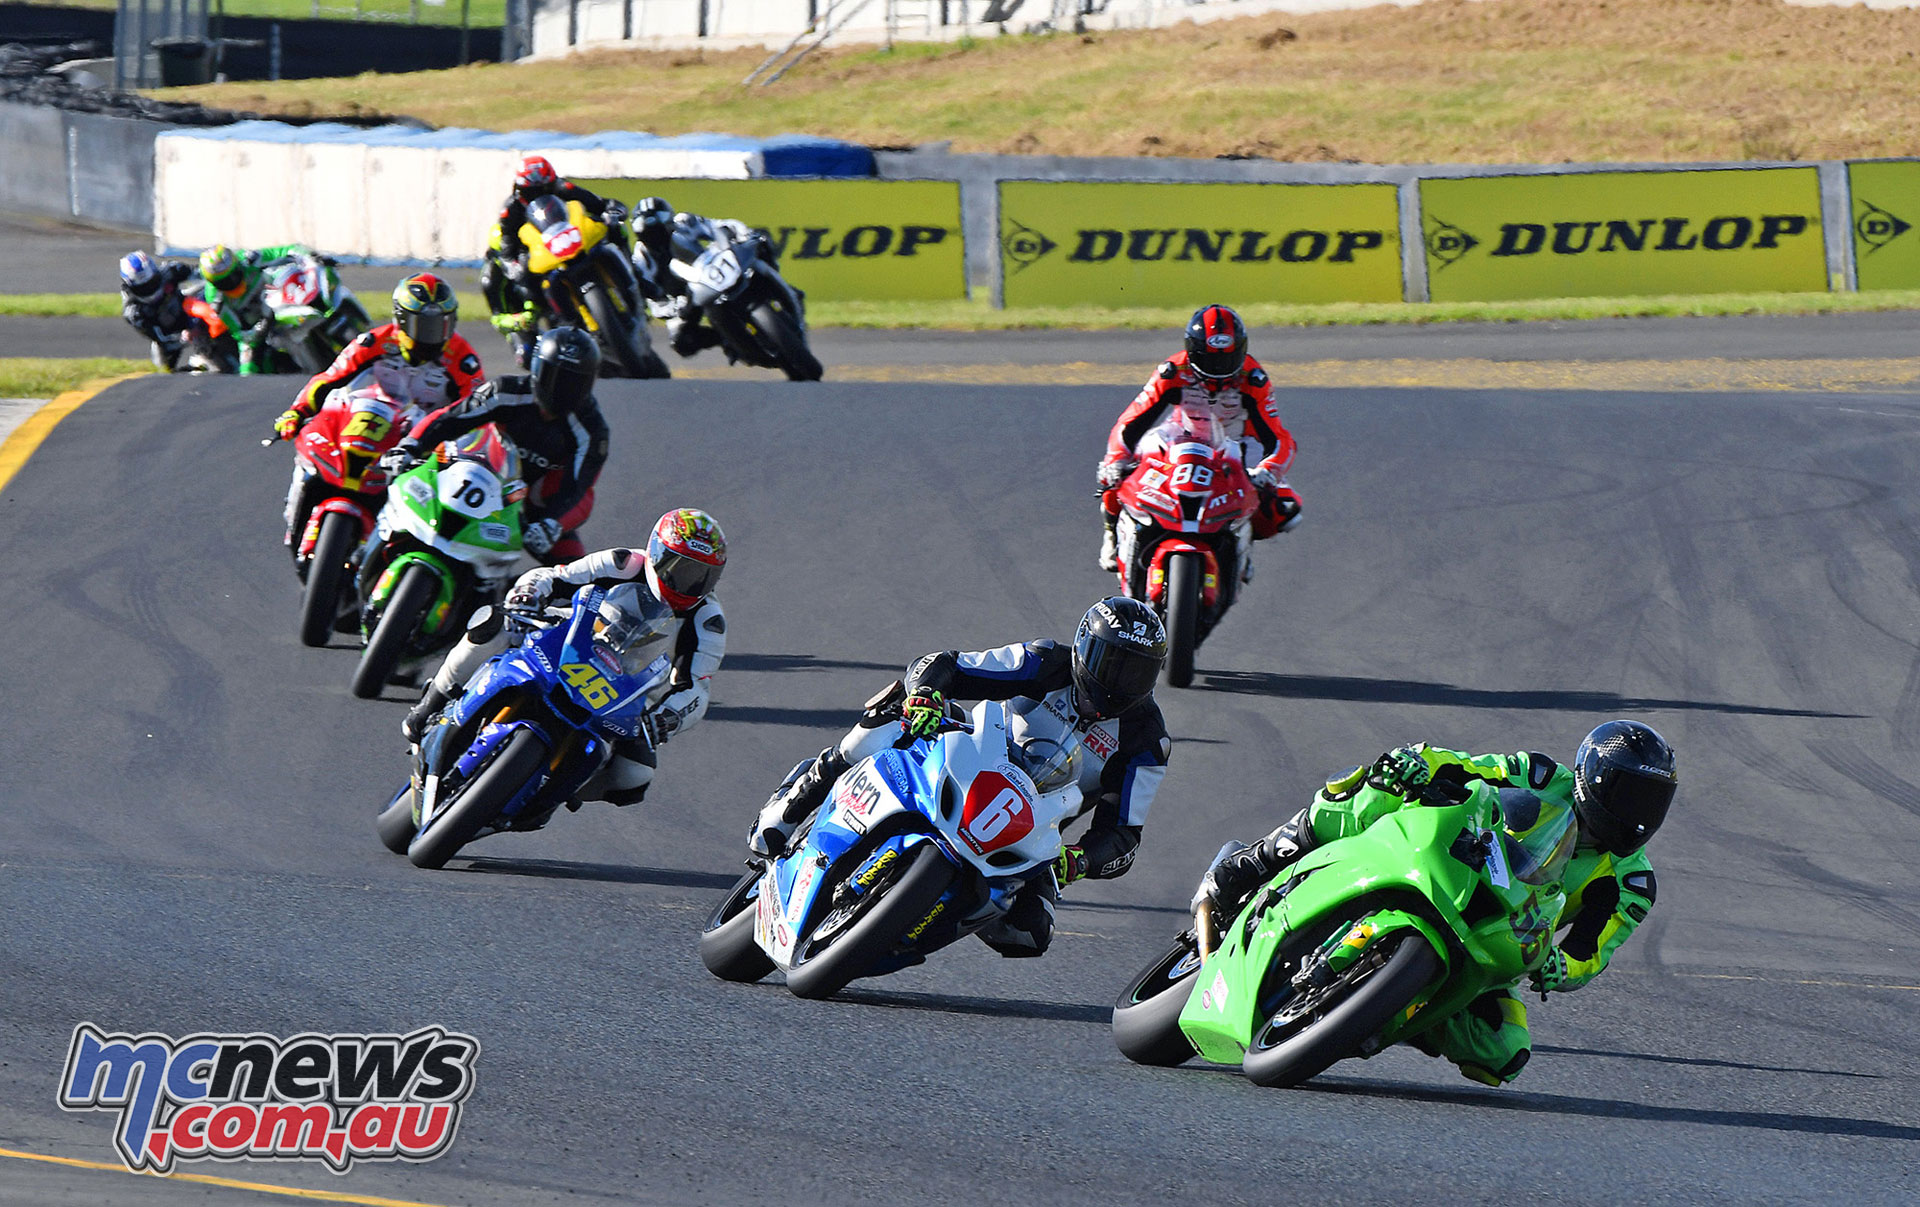 Swann Super Series Rounds 1 & 2 - Sydney Motorsport Park - Image: Keith Muir